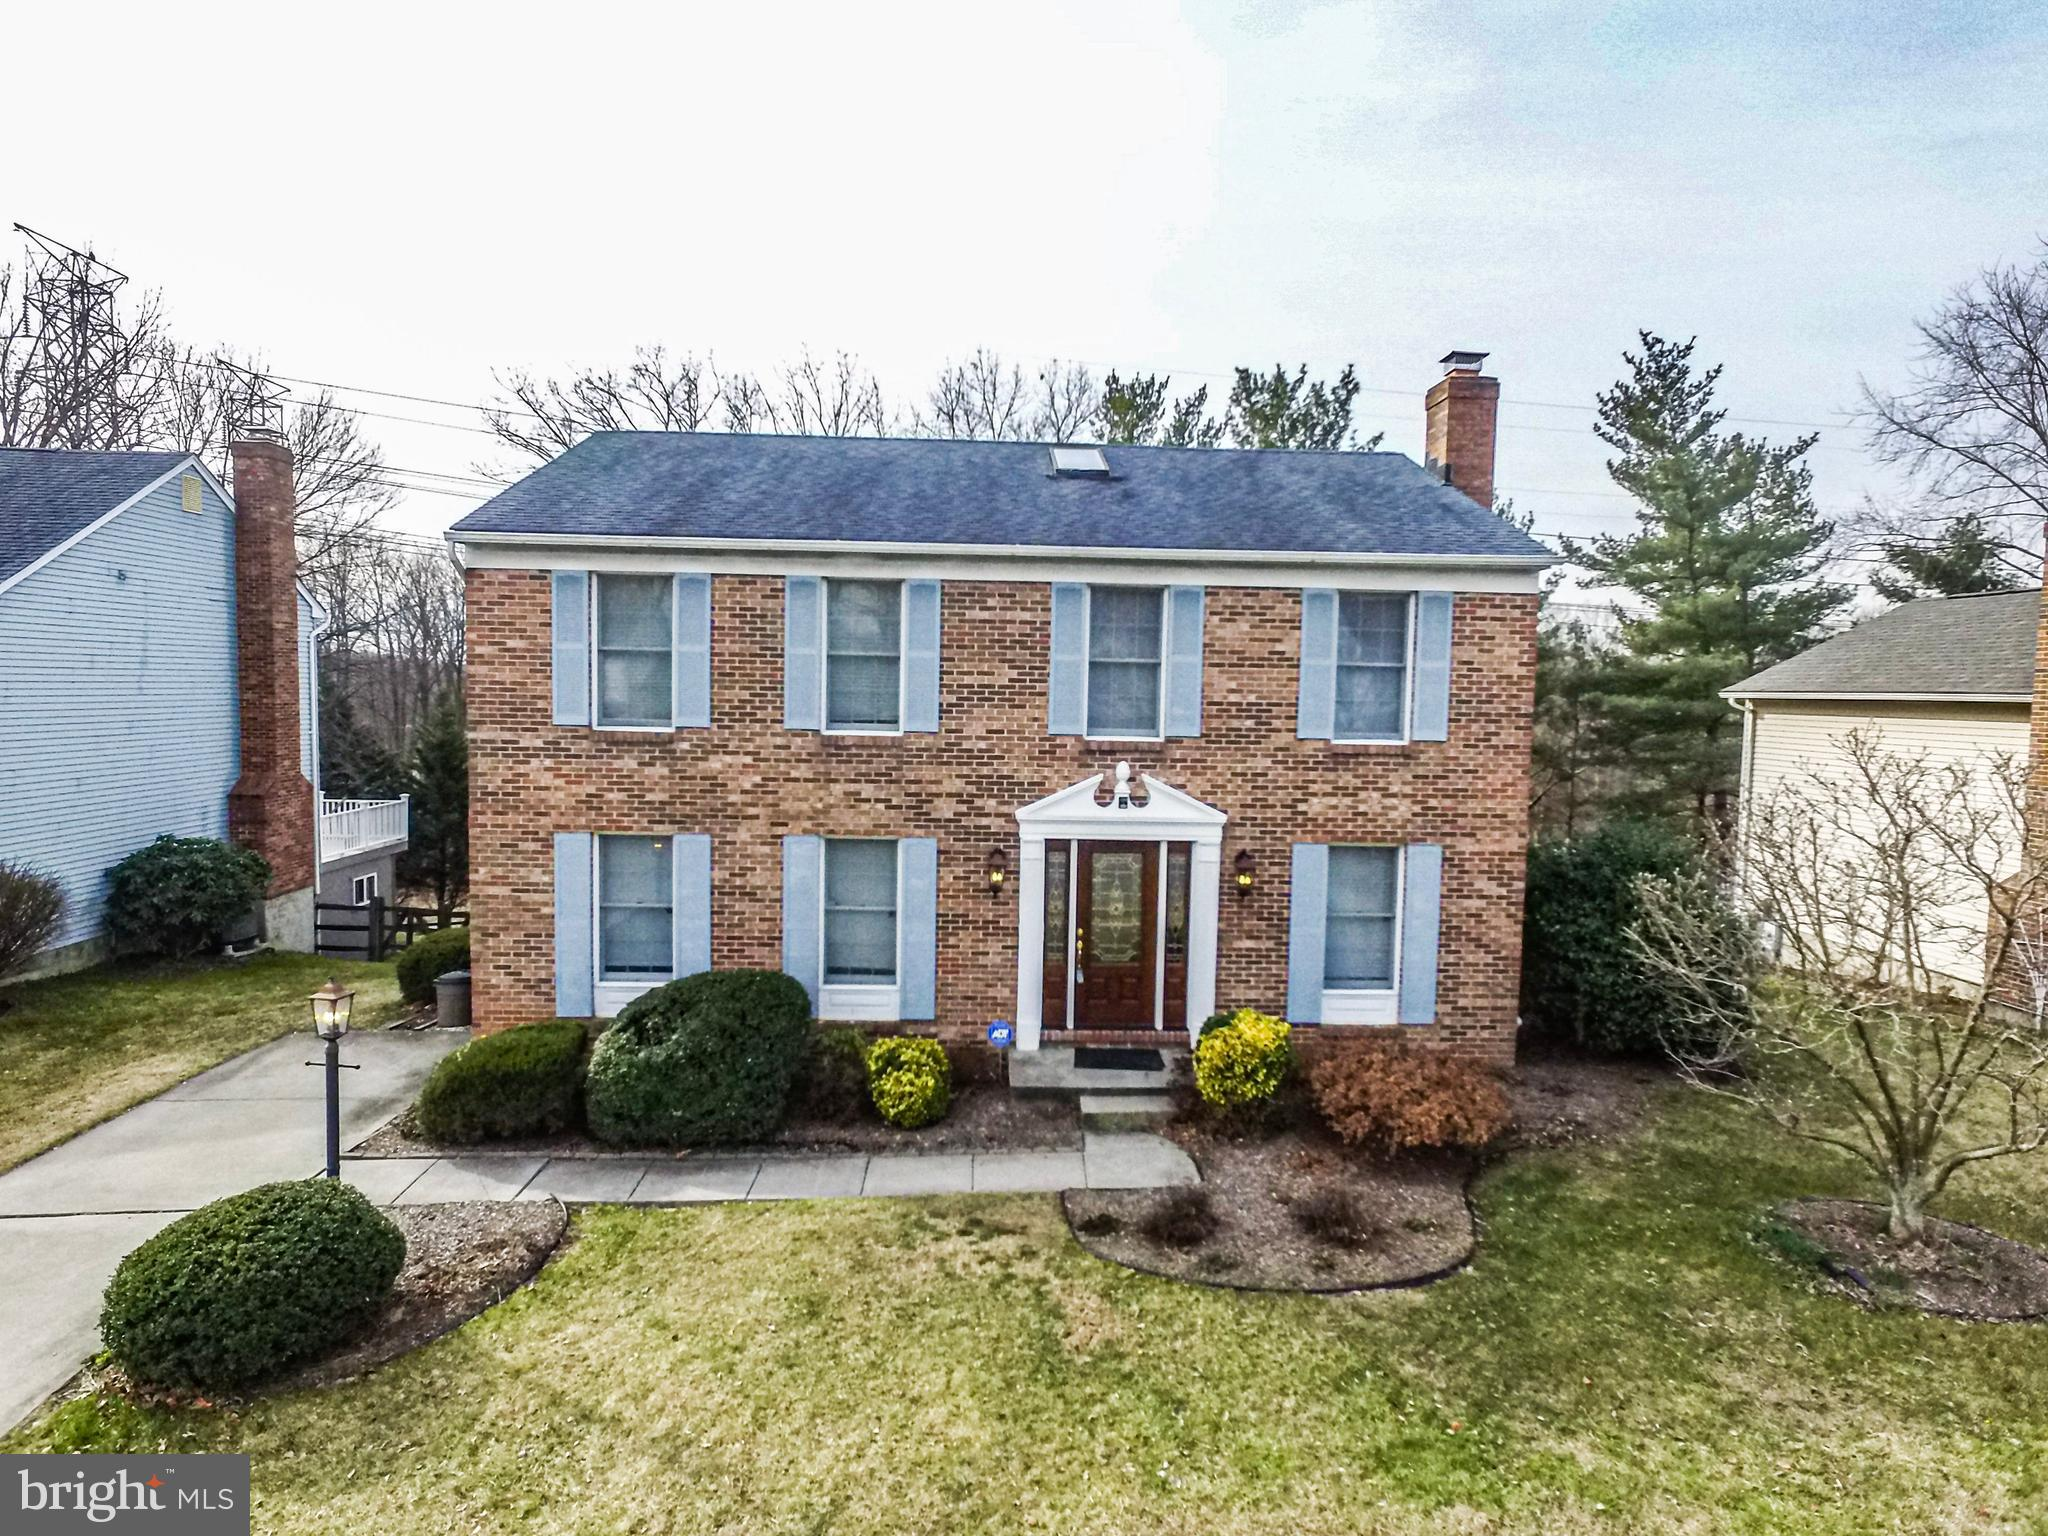 4317 BLAKELY AVENUE, BALTIMORE, MD 21236